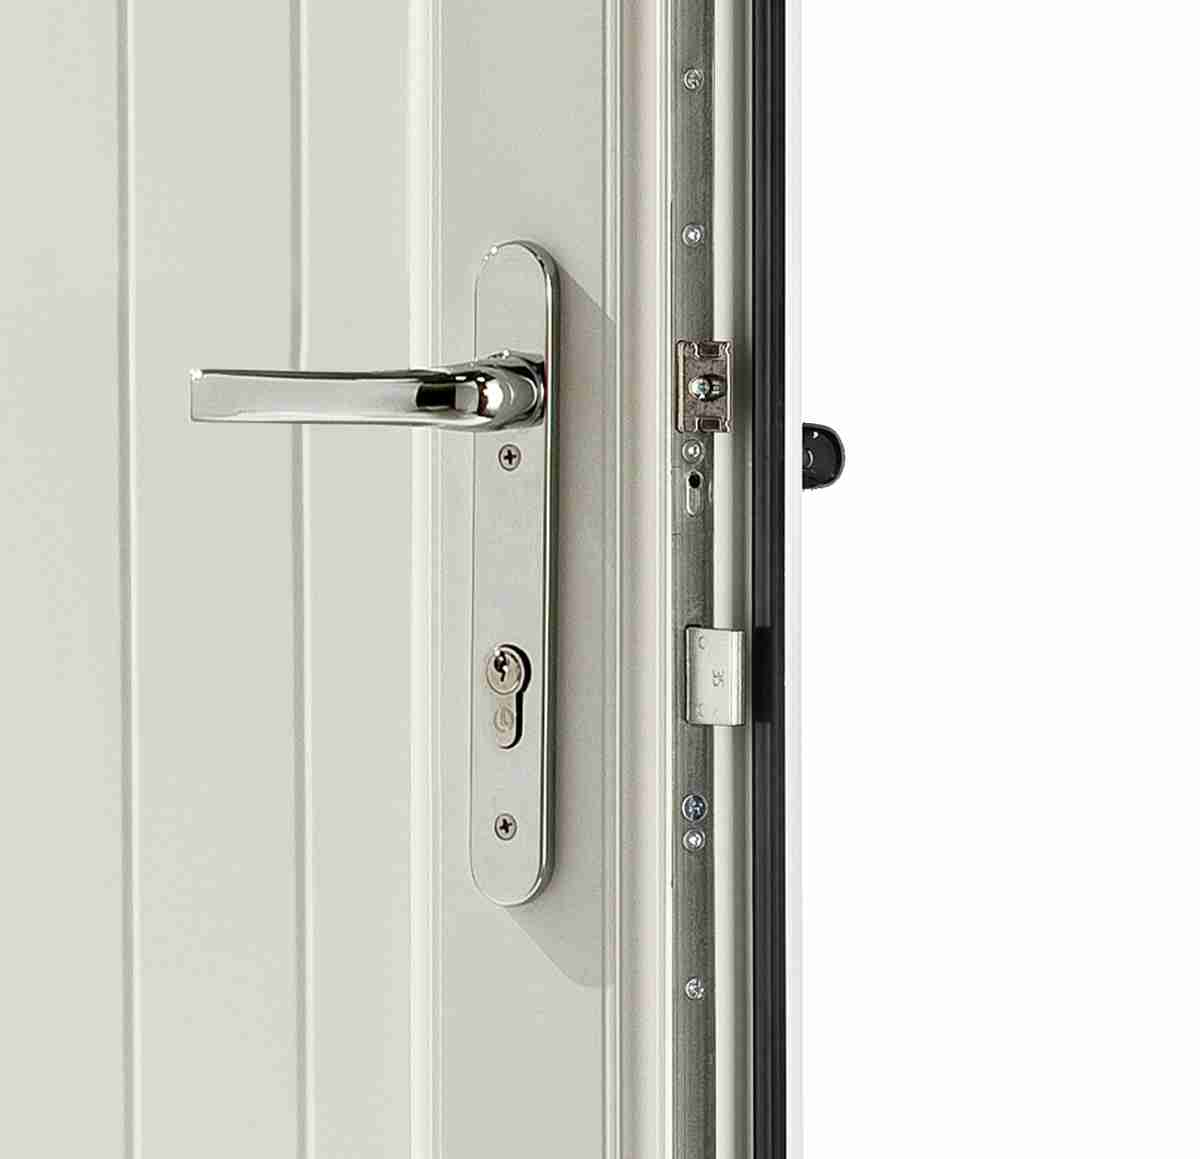 upvc panel door lock and security